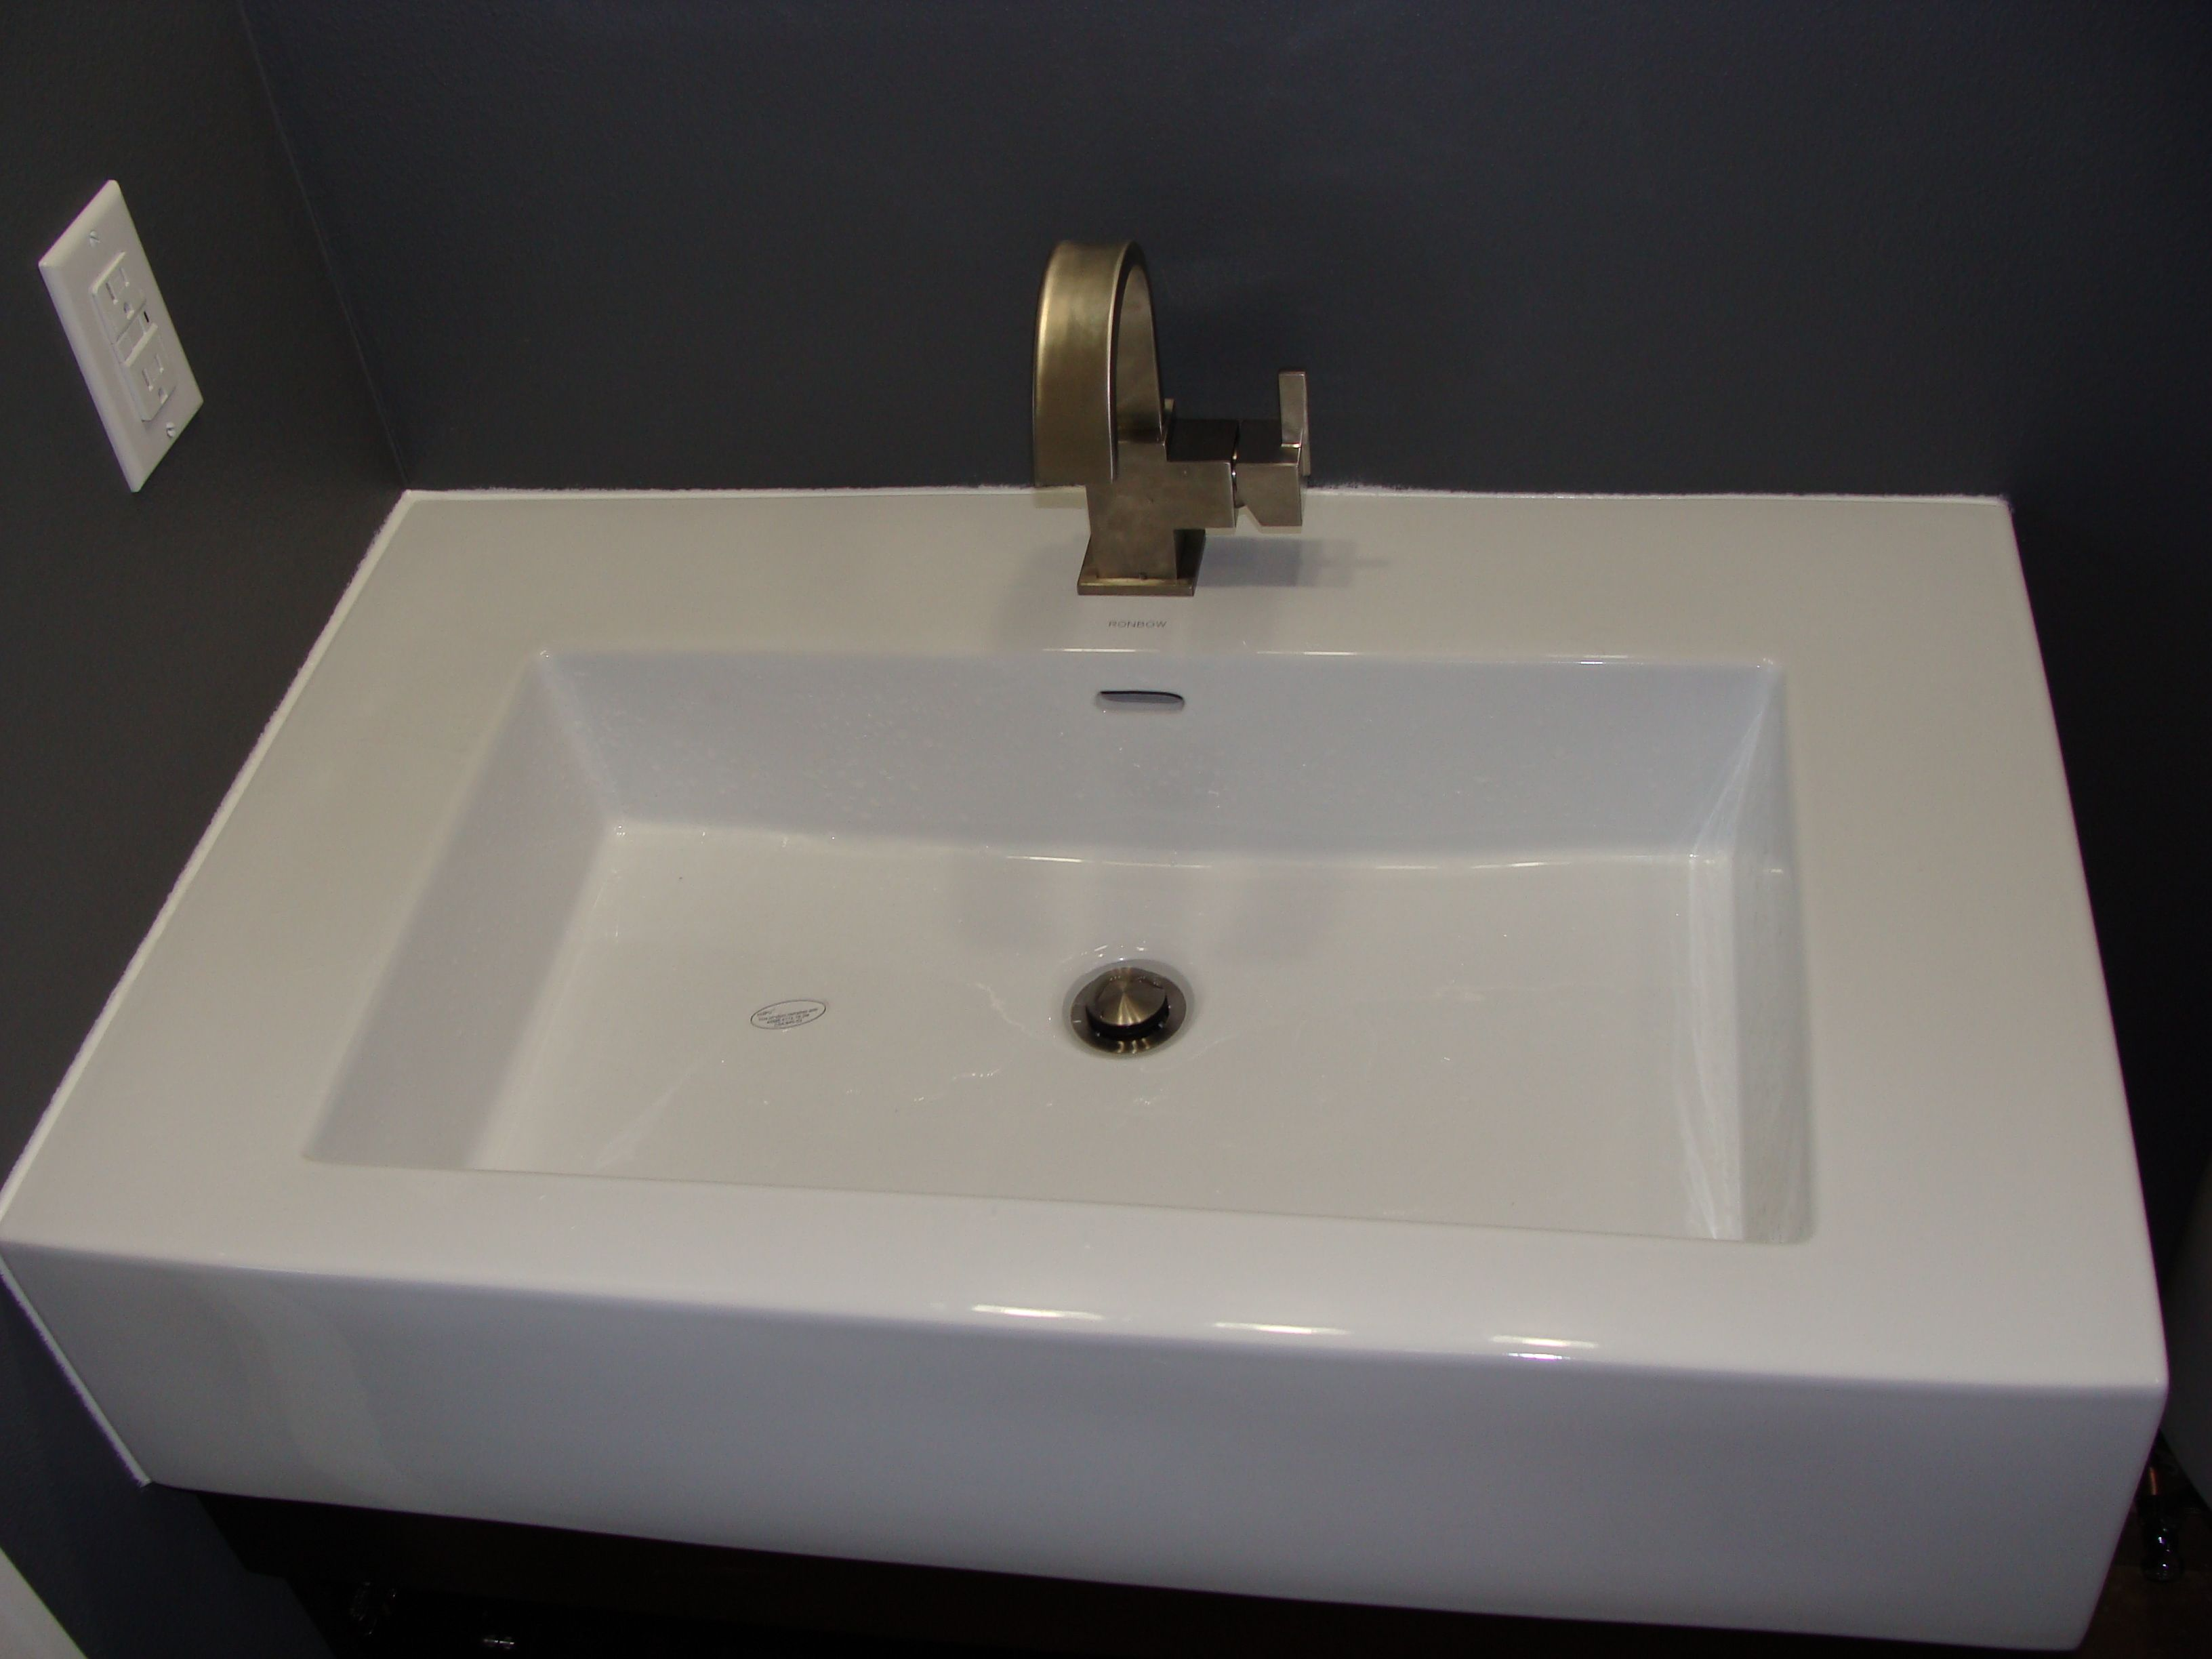 Ronbow Ceramic Sink Top Moen Faucet Bathrooms and kitchens Pinte ...